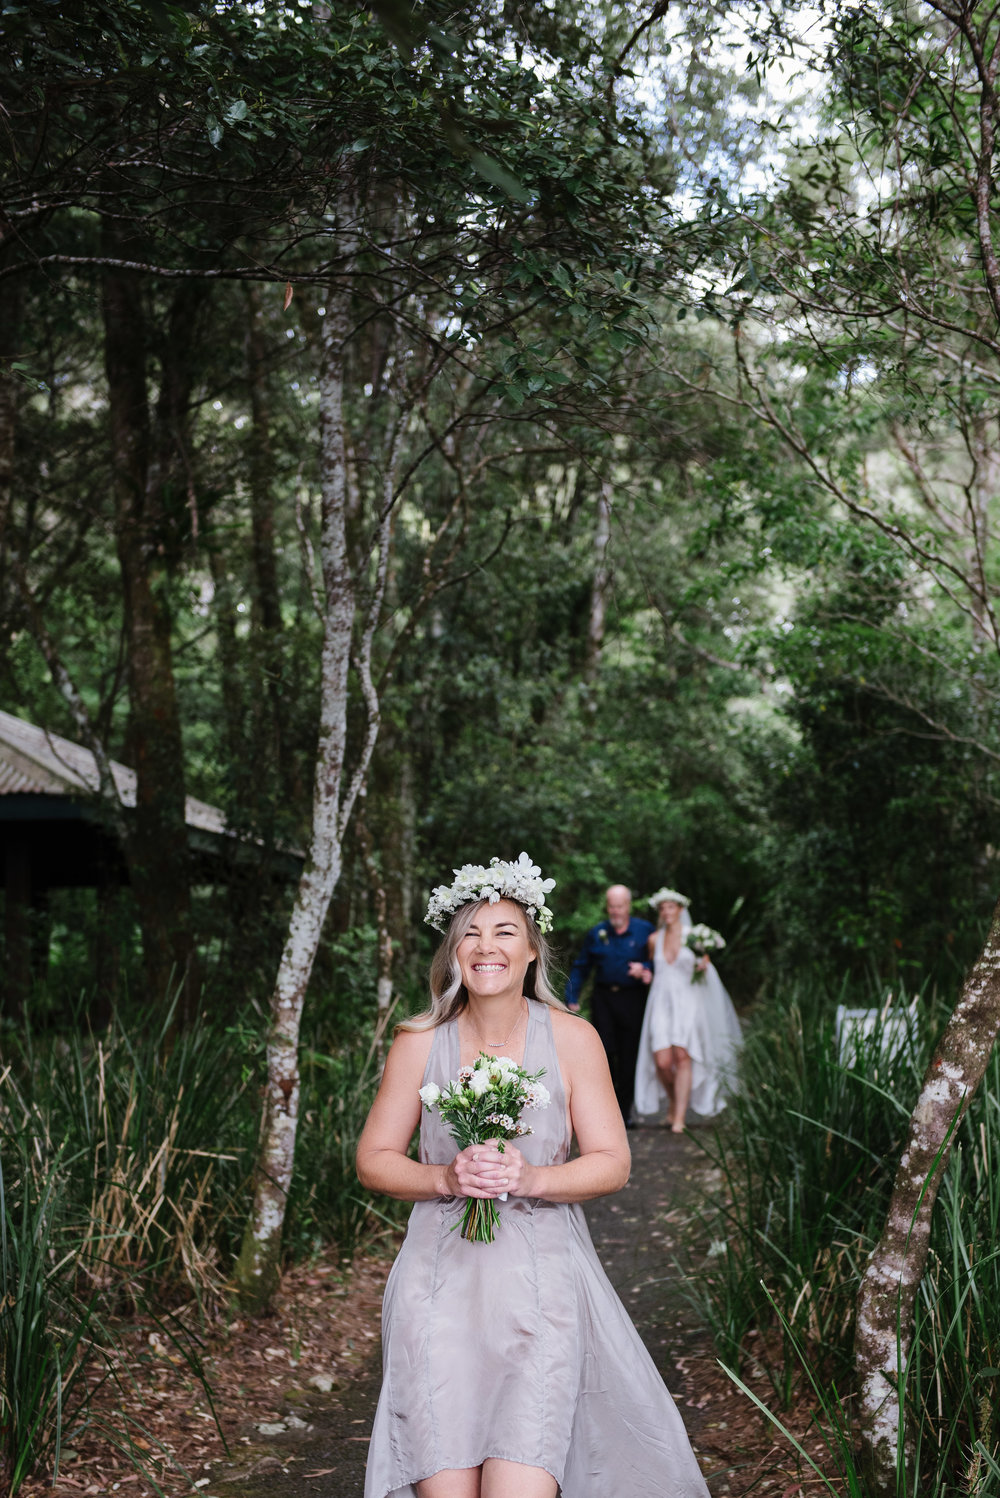 Carla and Luke- wedding photographer, byron bay wedding and family photographer, tweed heads wedding and family photography-147.jpg